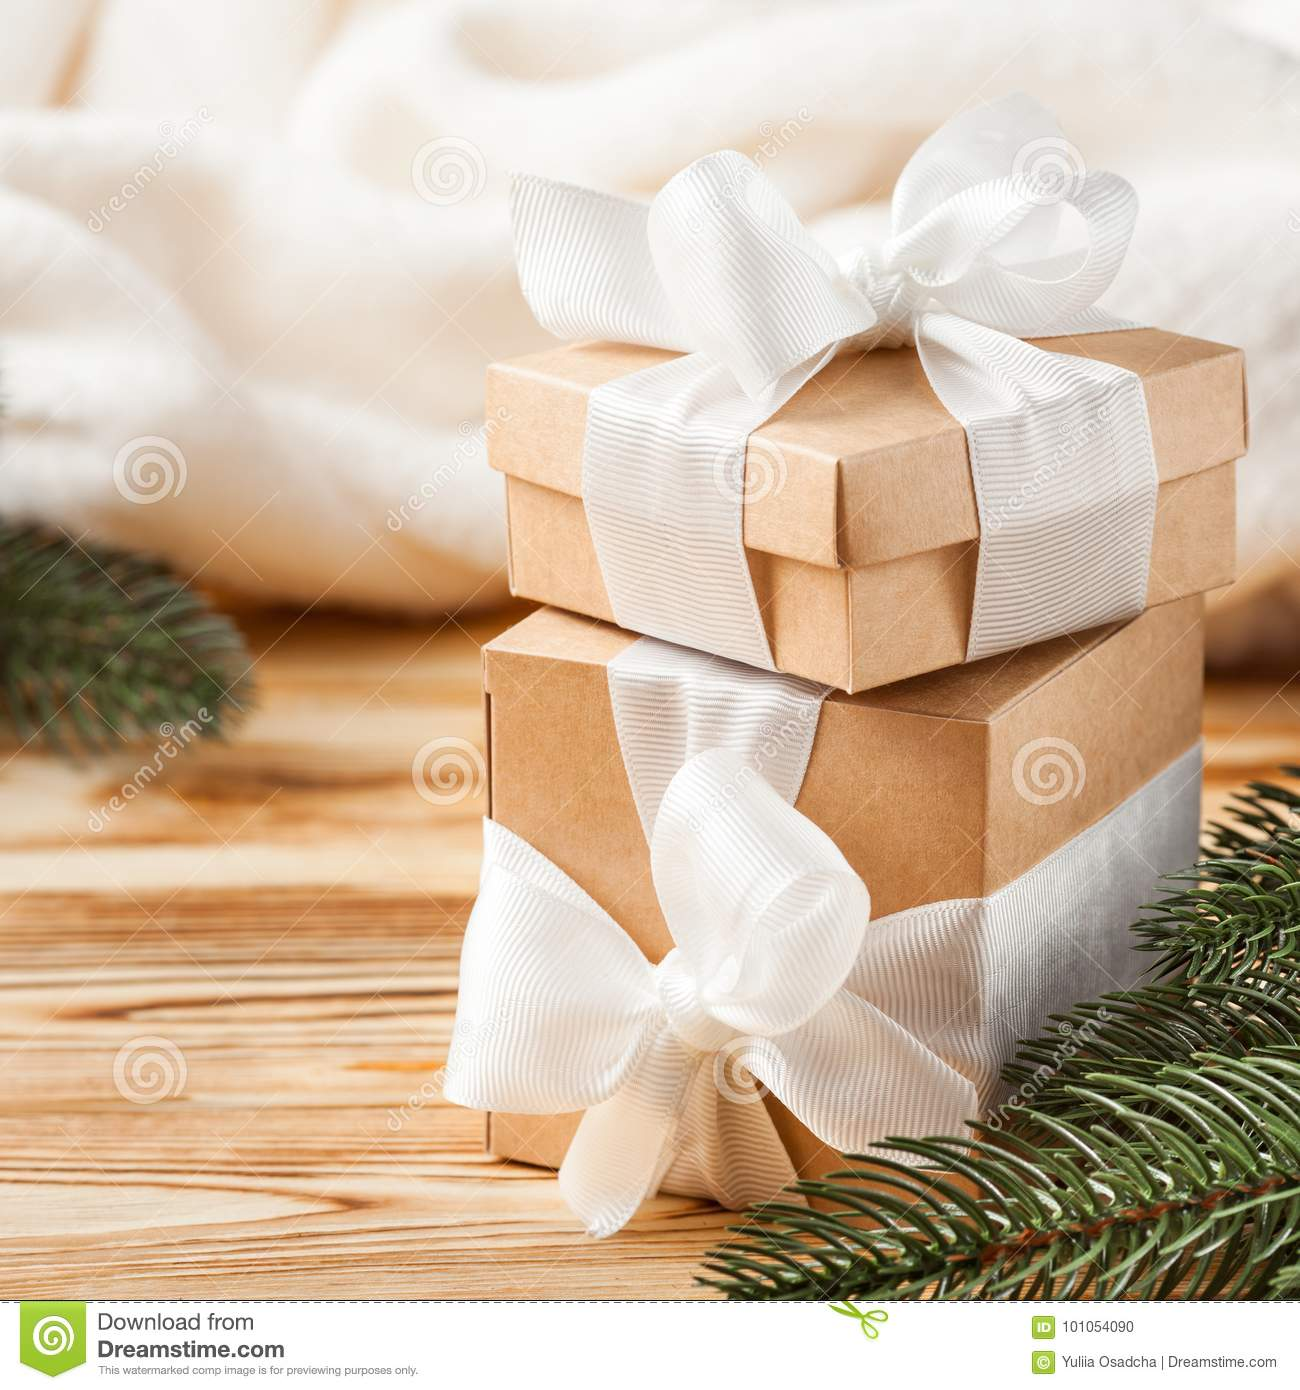 Craft gift boxes with white ribbon, bow, green Christmas tree, decorations, white plaid on wooden background. Xmas and New Year co